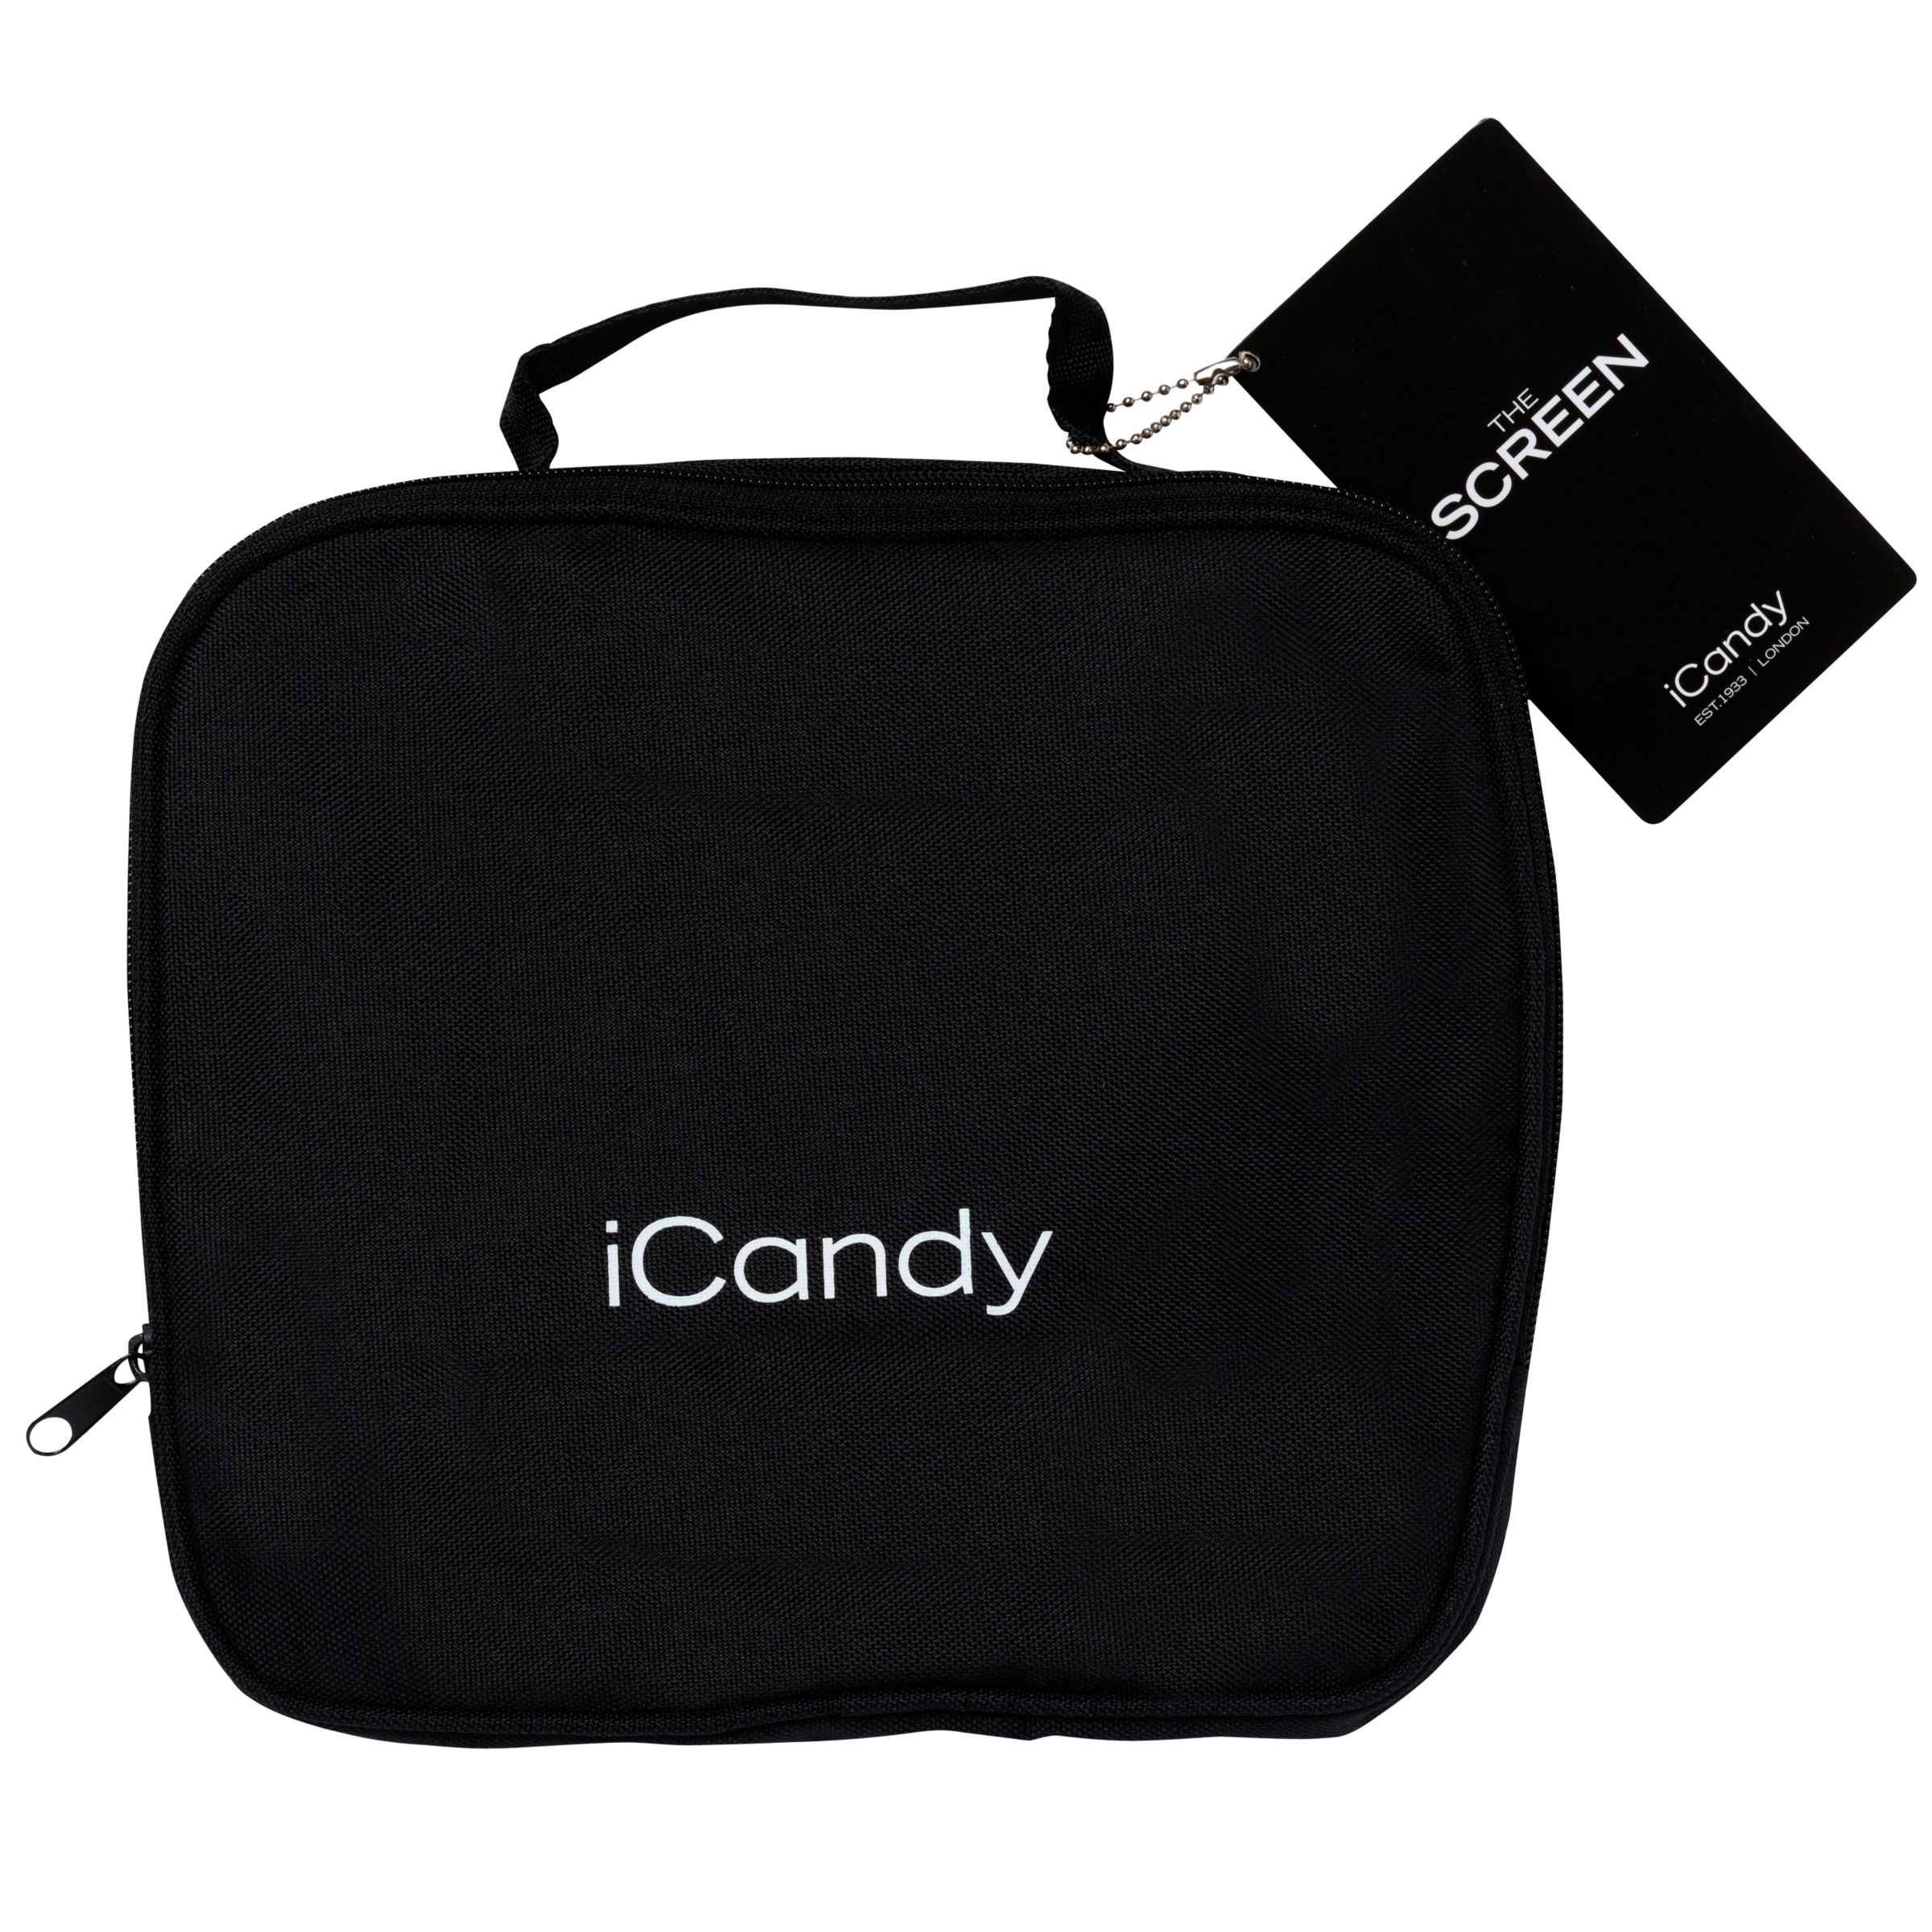 iCandy iCandy The Screen Pushchair Sunshade, Black